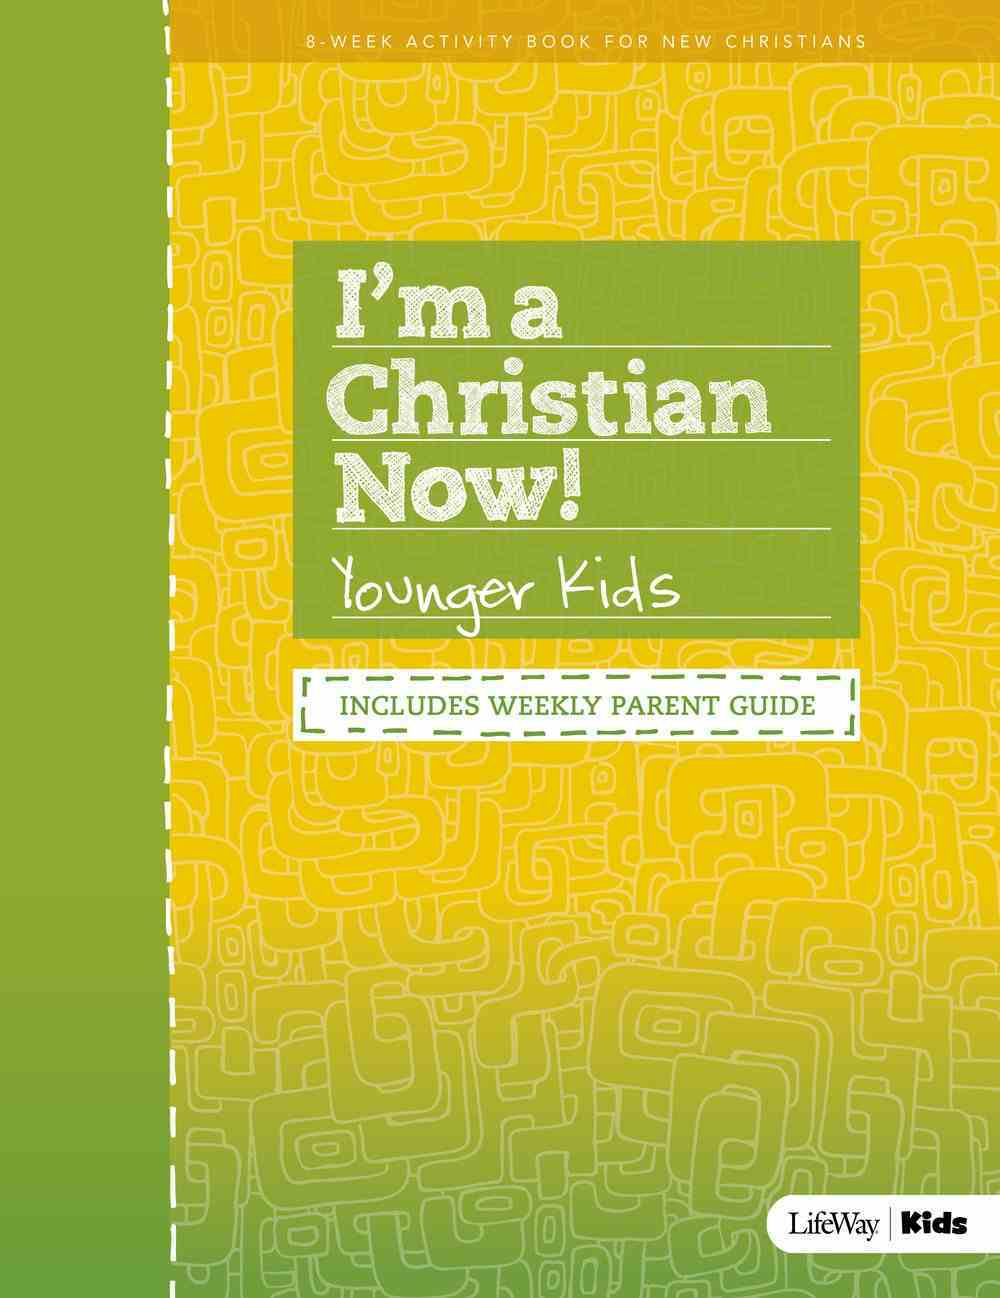 I'm a Christian Now: Younger Kids (8 Week Activity Book Includes Weekly Parent Guide) Paperback